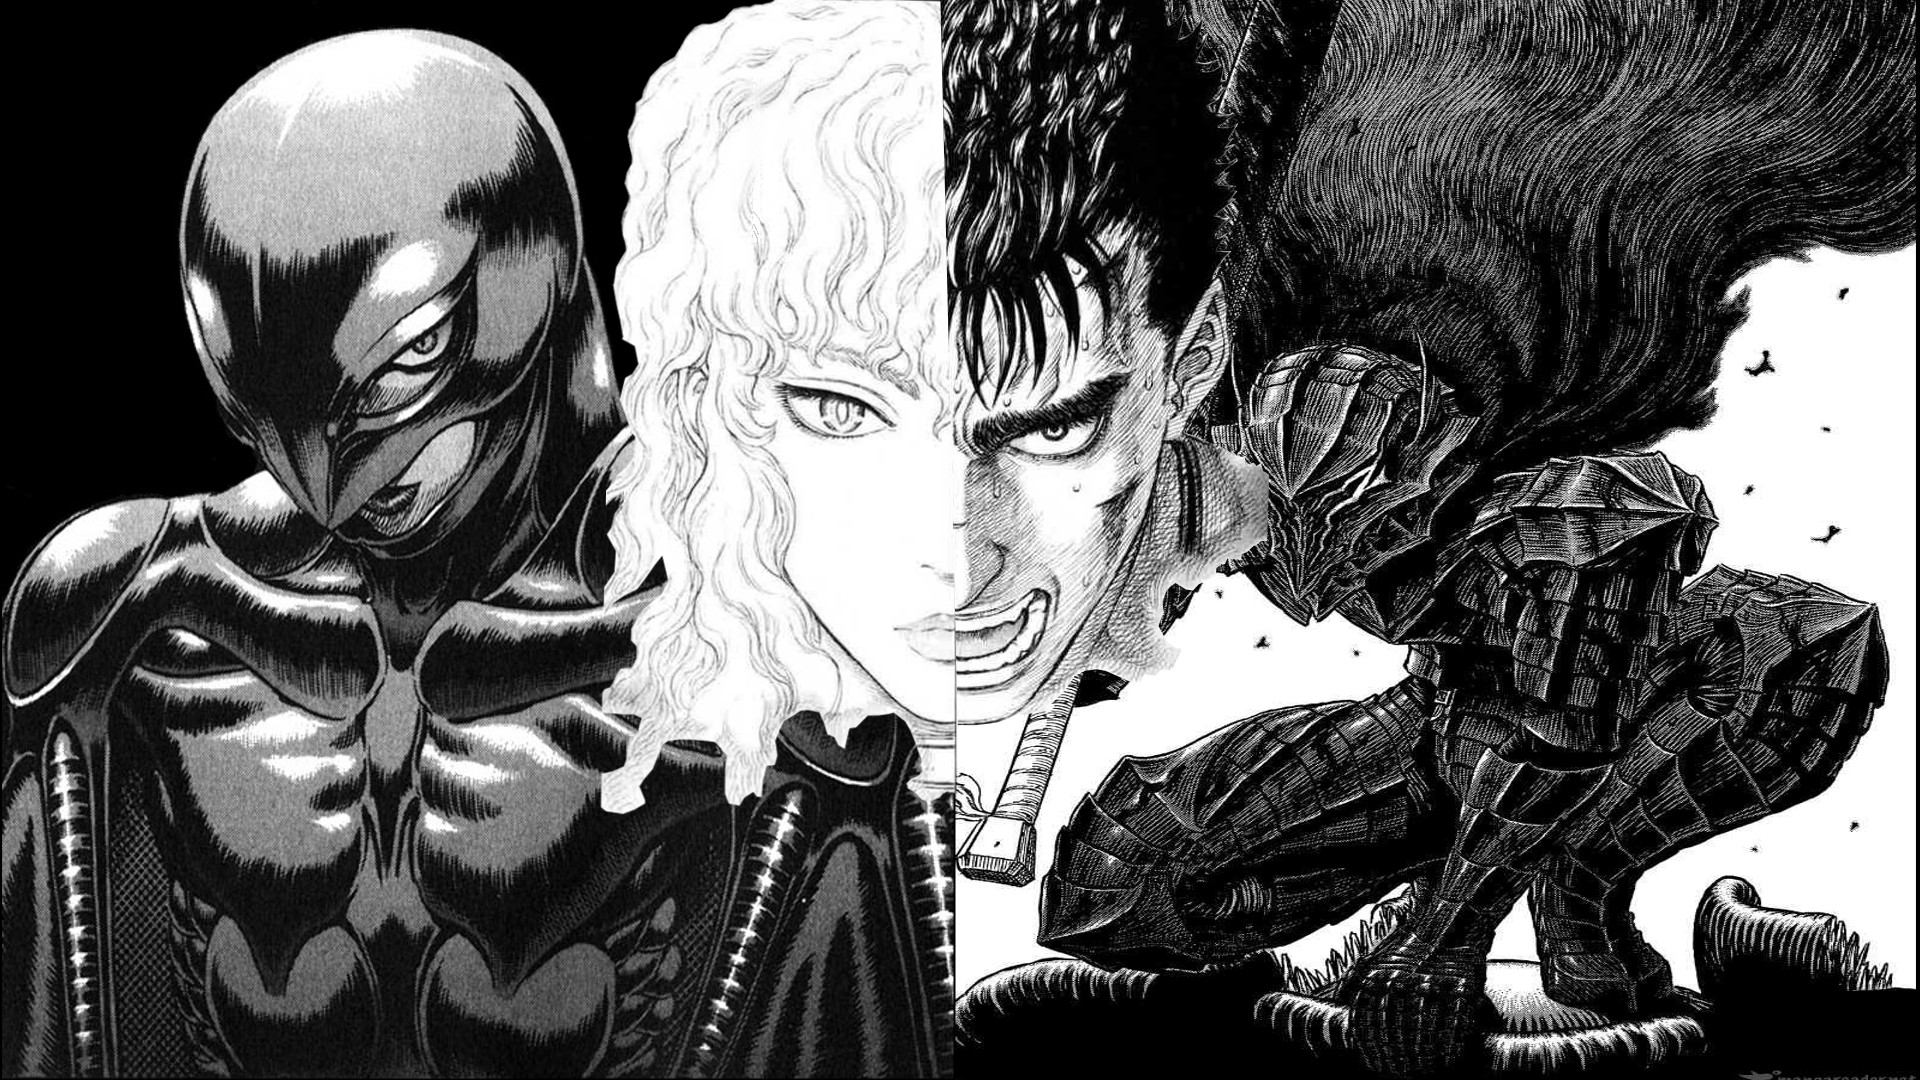 Berserk Wallpaper Download Free High Resolution